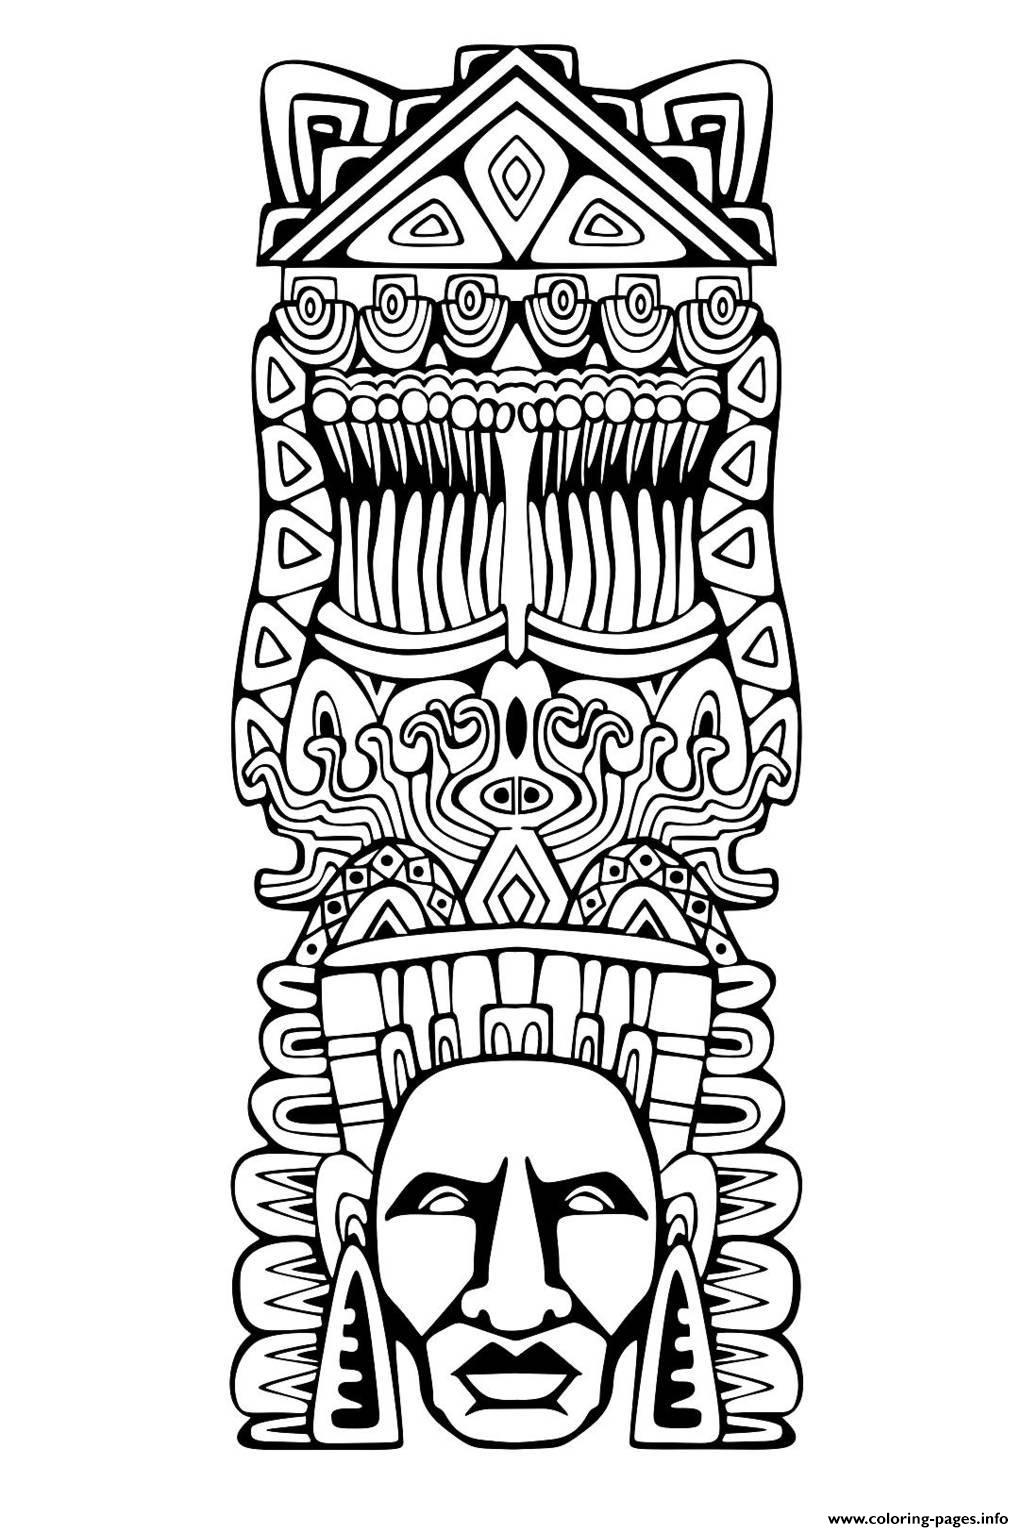 inca coloring pages inca coloring pages at getcoloringscom free printable inca coloring pages